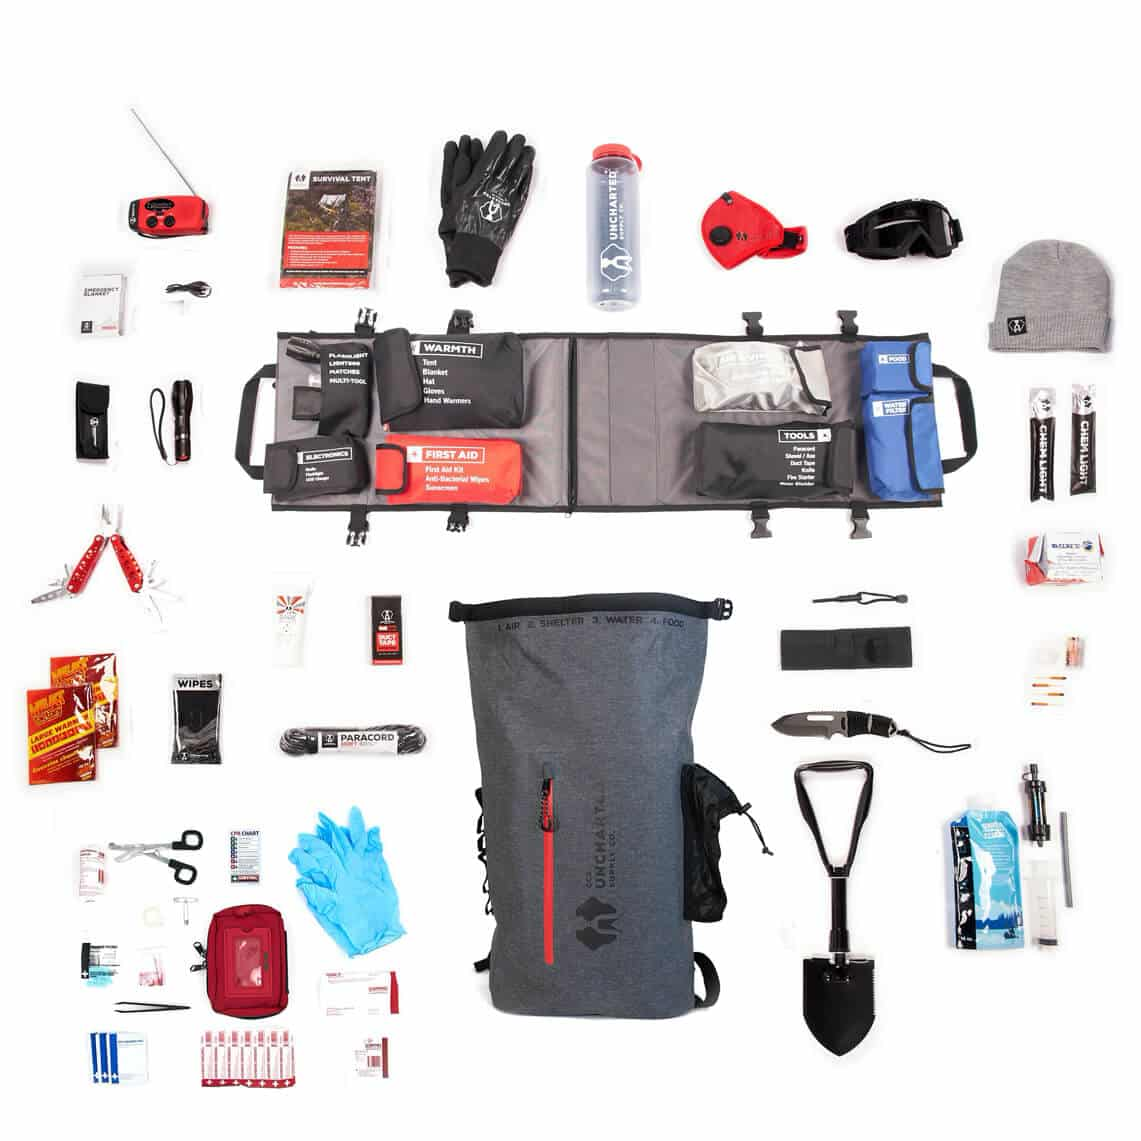 The SEVENTY2® Survival System